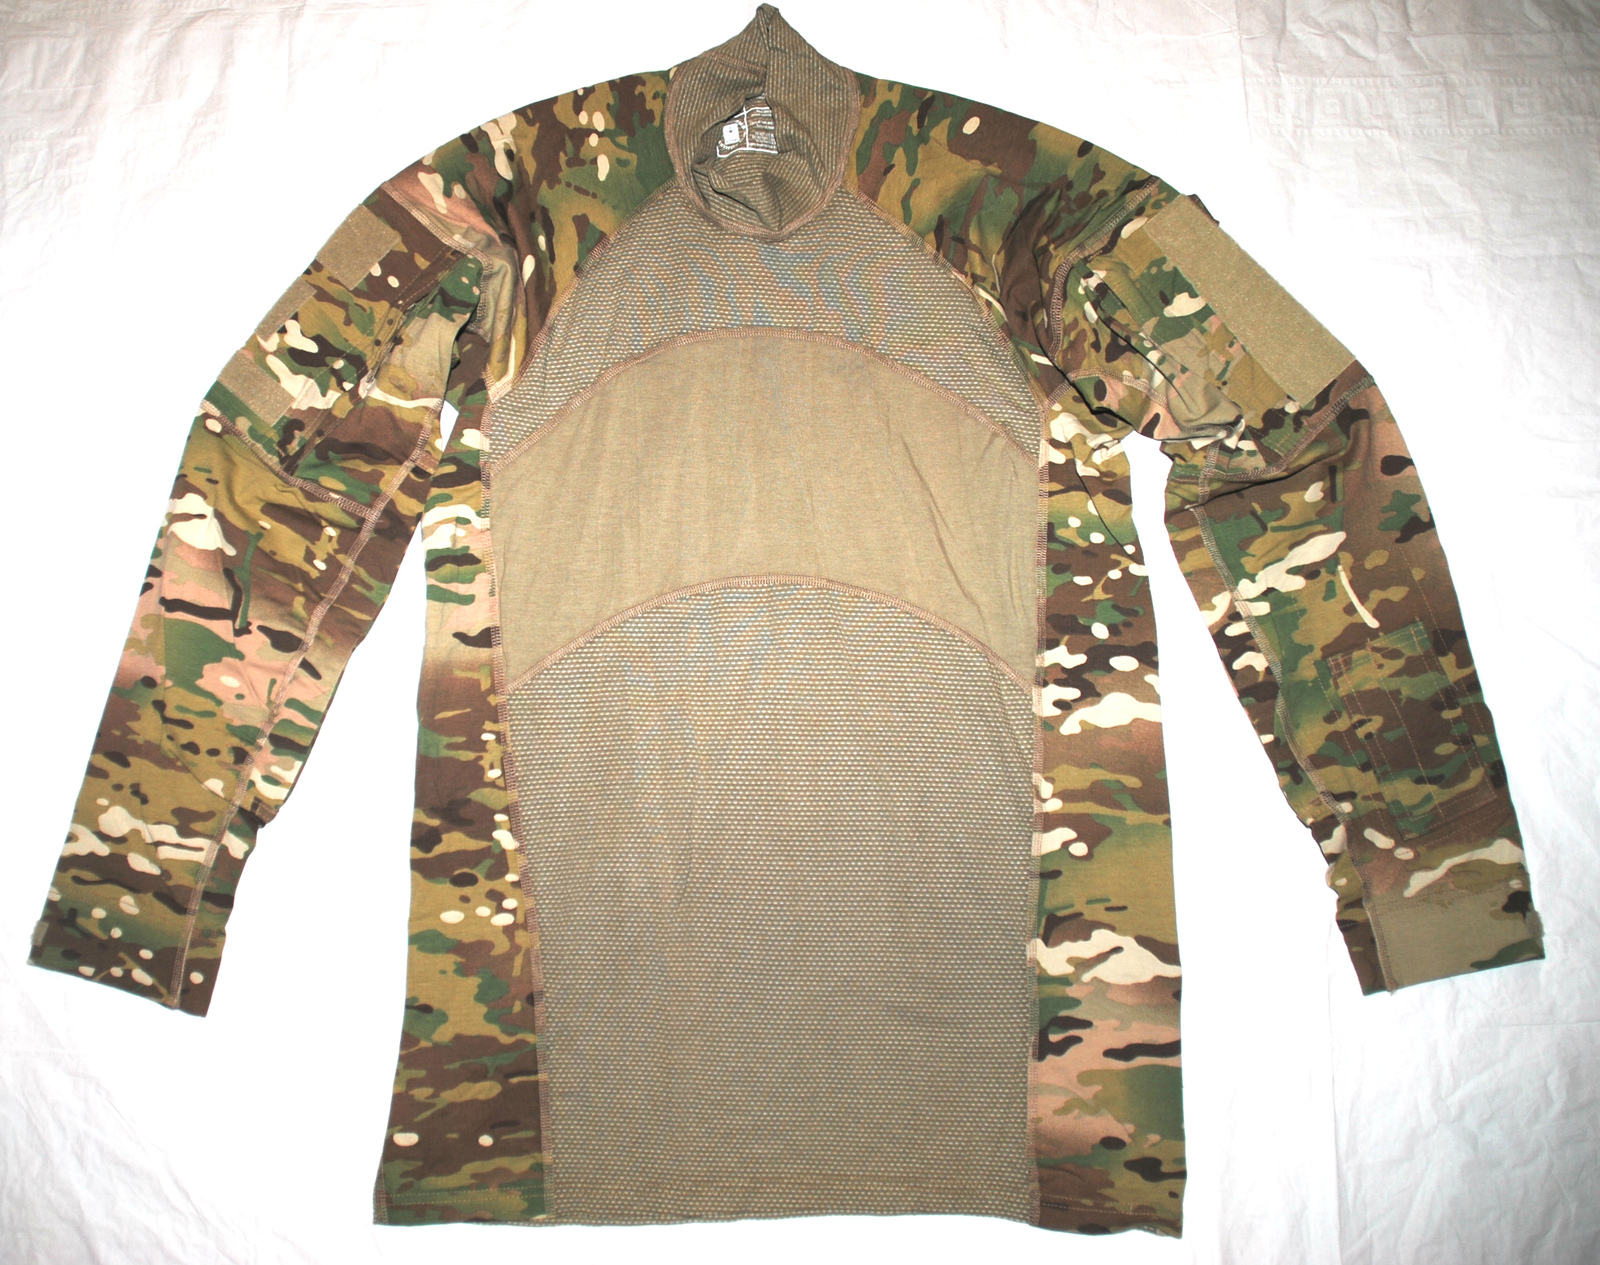 US ARMY ISSUE - MULTICAM ARMY COMBAT NOMEX FLAME RESISTANT SHIRT - SIZE LARGE